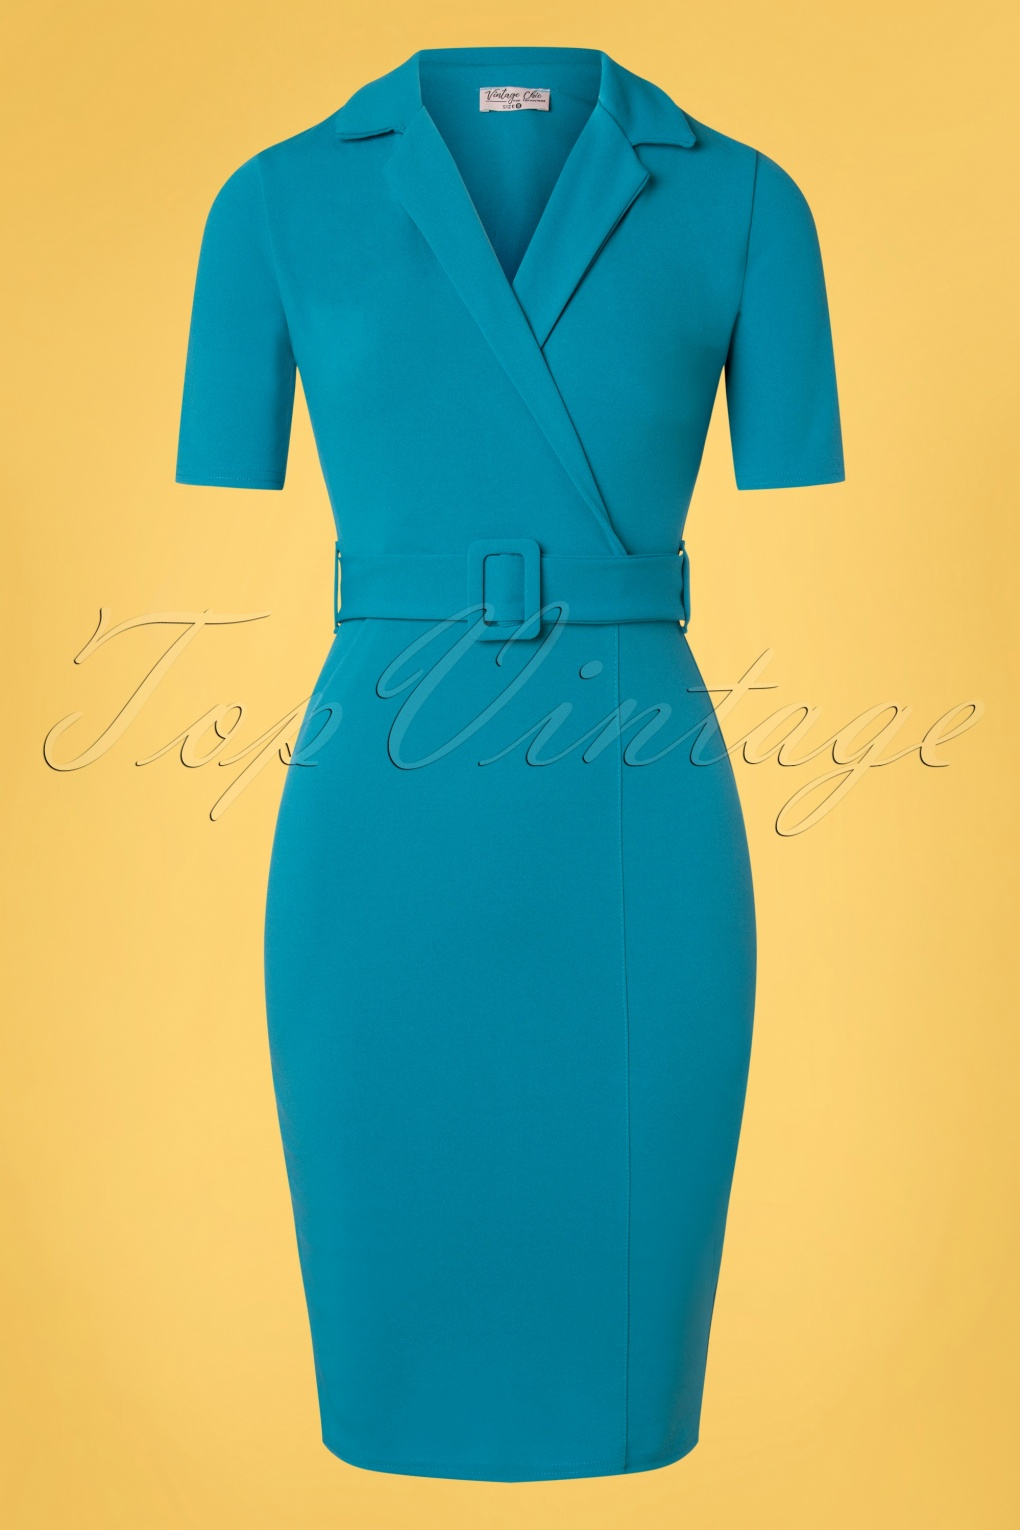 1950s Pencil Dresses & Wiggle Dress Styles 50s Denysa Pencil Dress in Mosaic Blue £56.90 AT vintagedancer.com